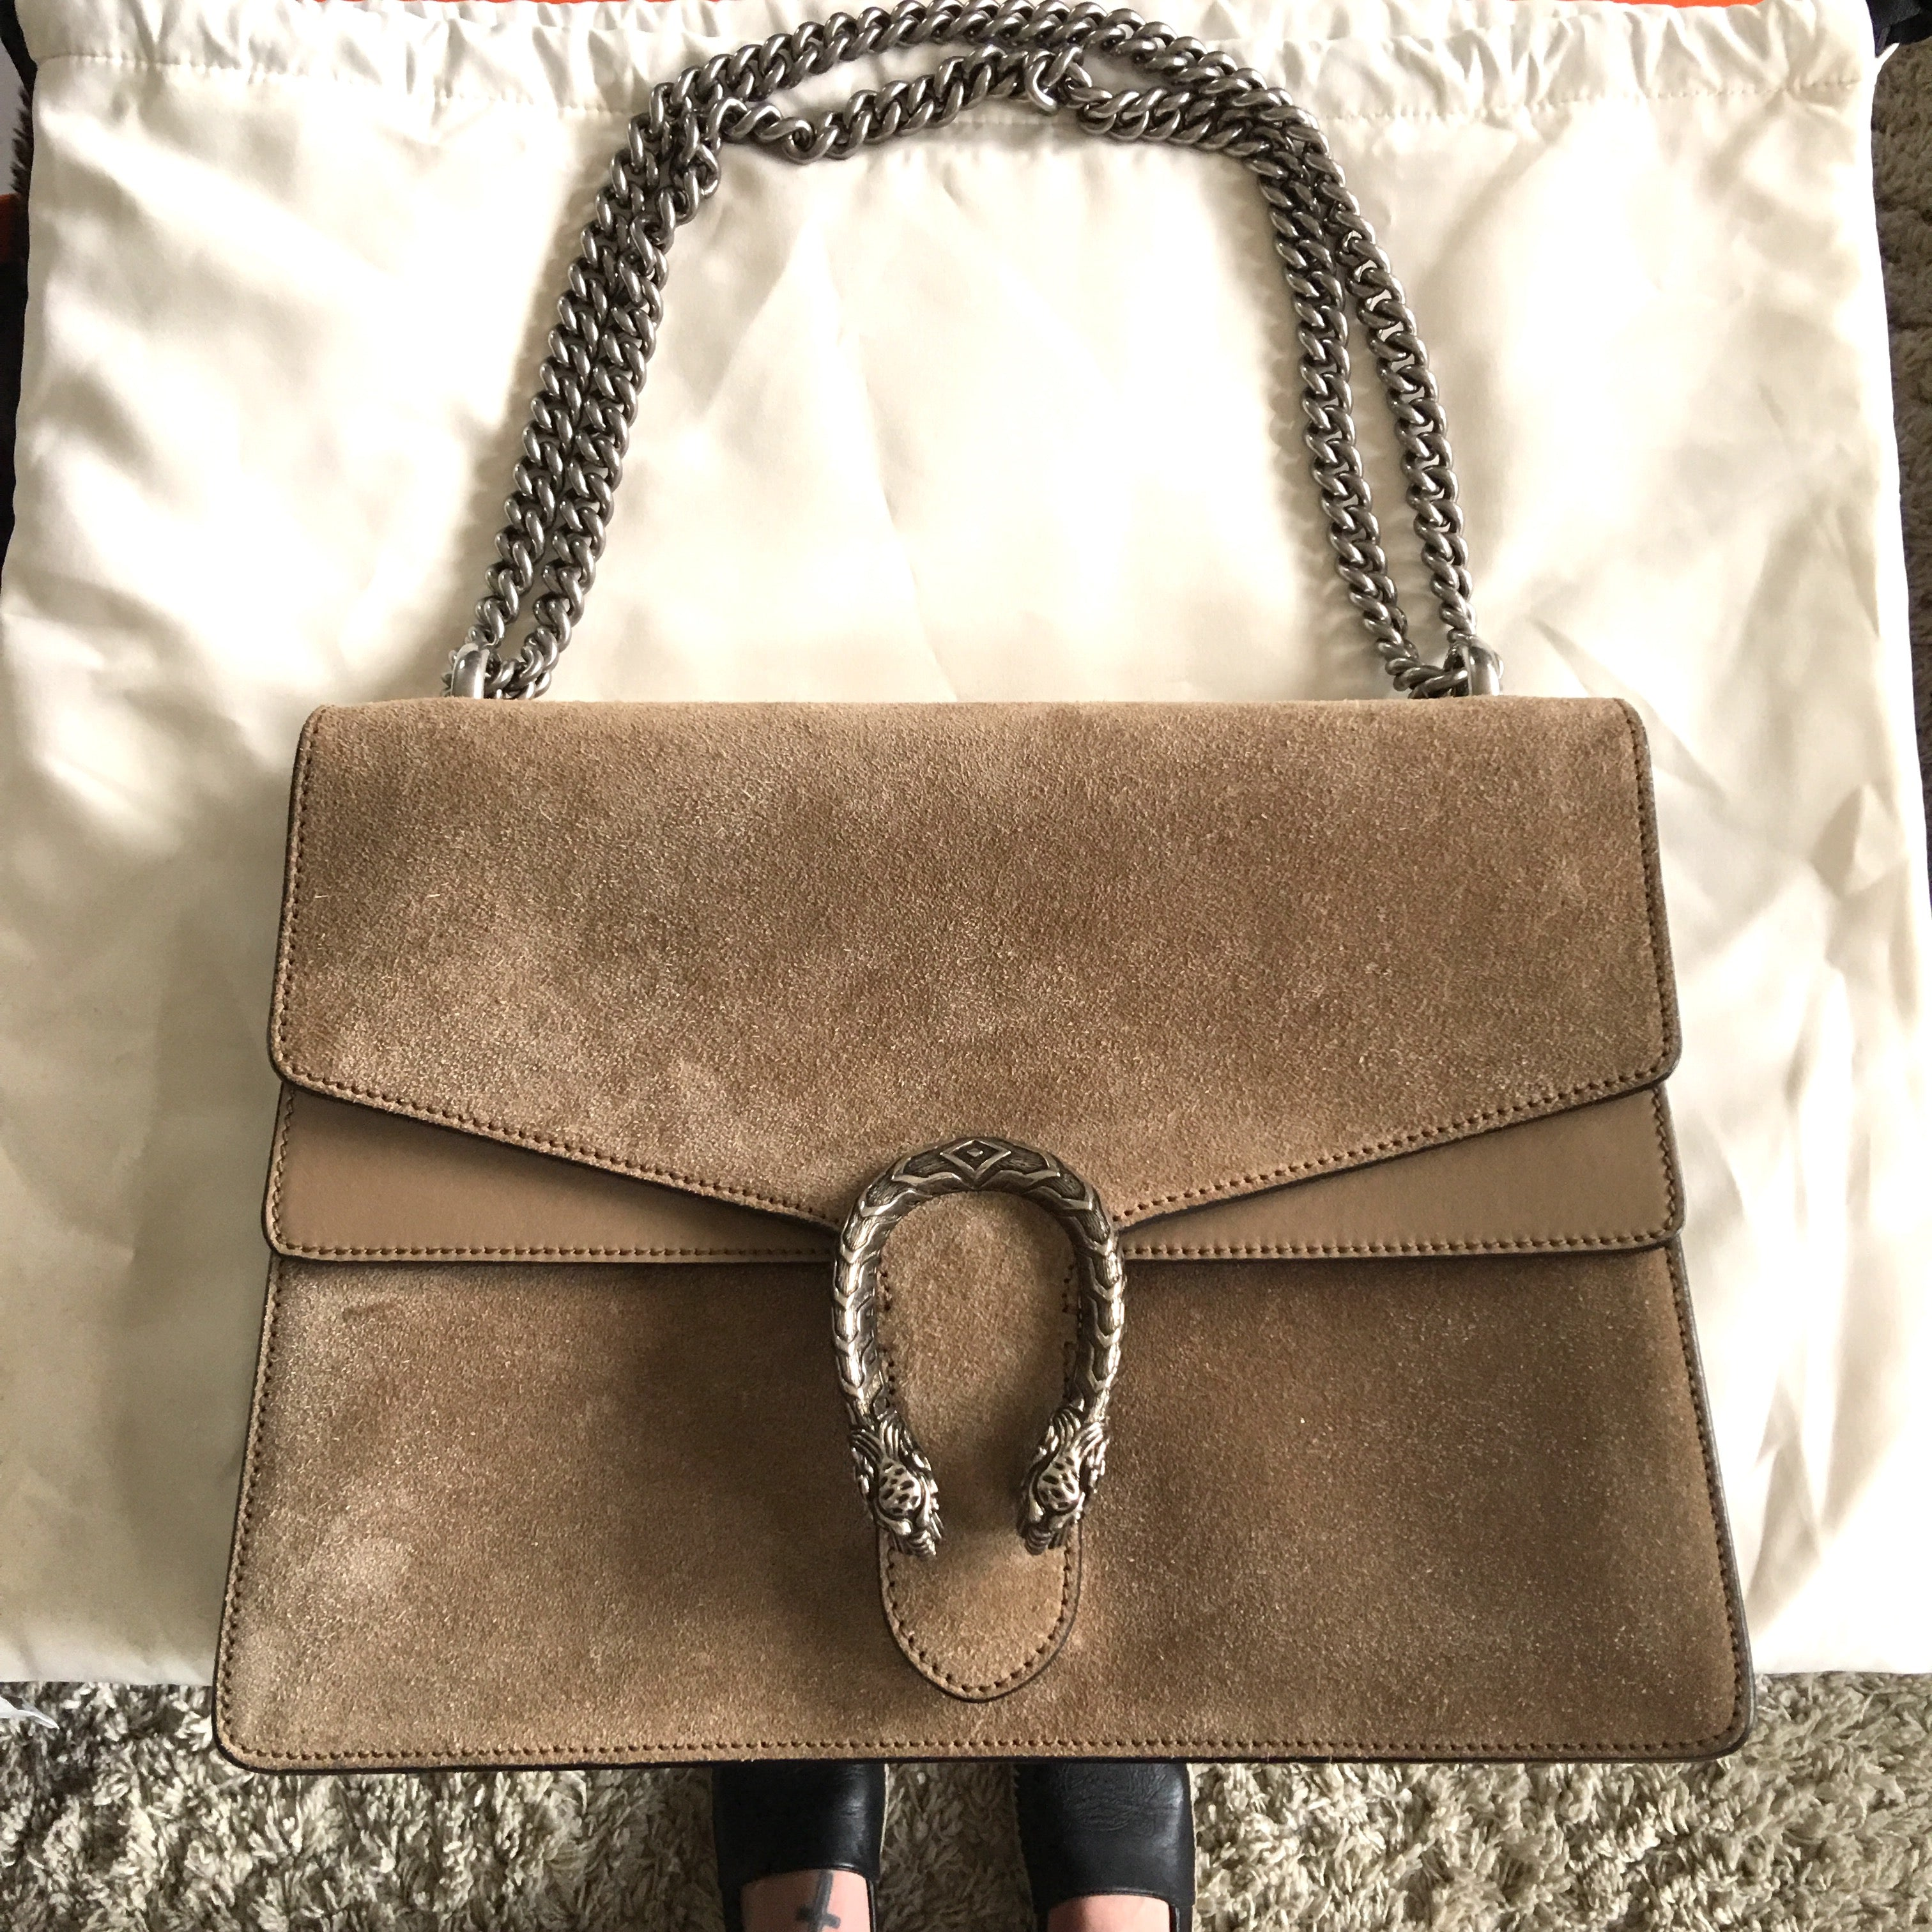 bb1f4baa138 Gucci Dionysus medium bag – Beccas Bags Boutique